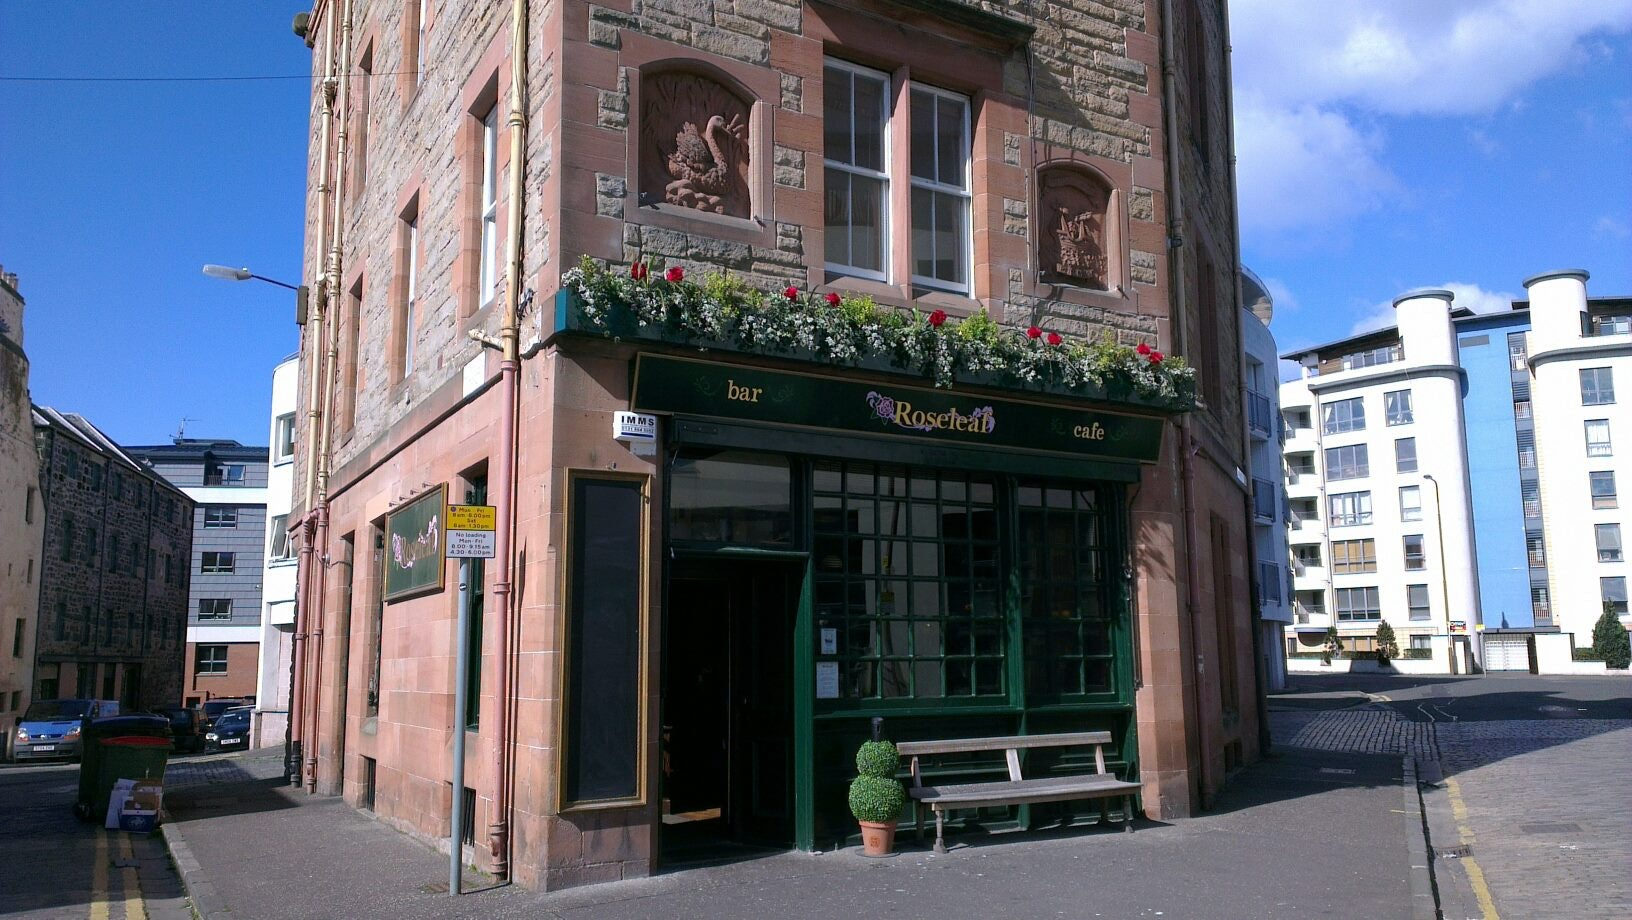 street front of  The Roseleaf pub